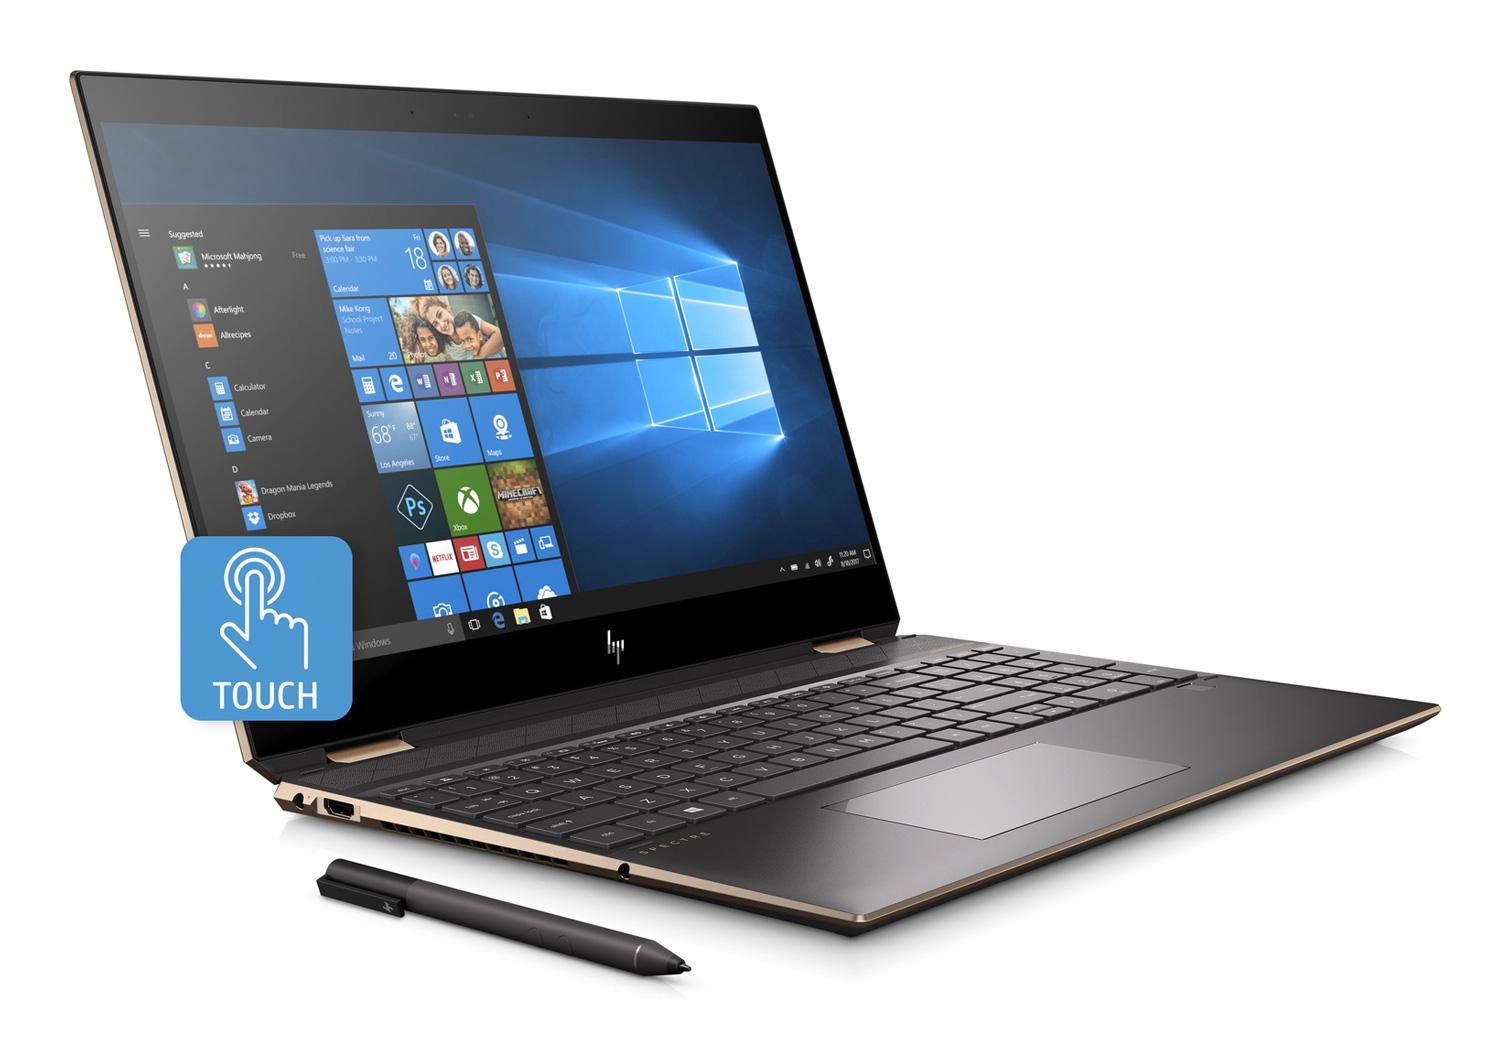 Ordinateur portable HP Spectre x360 15-df0018nf Cendre 4K Tactile - MX150 - photo 2